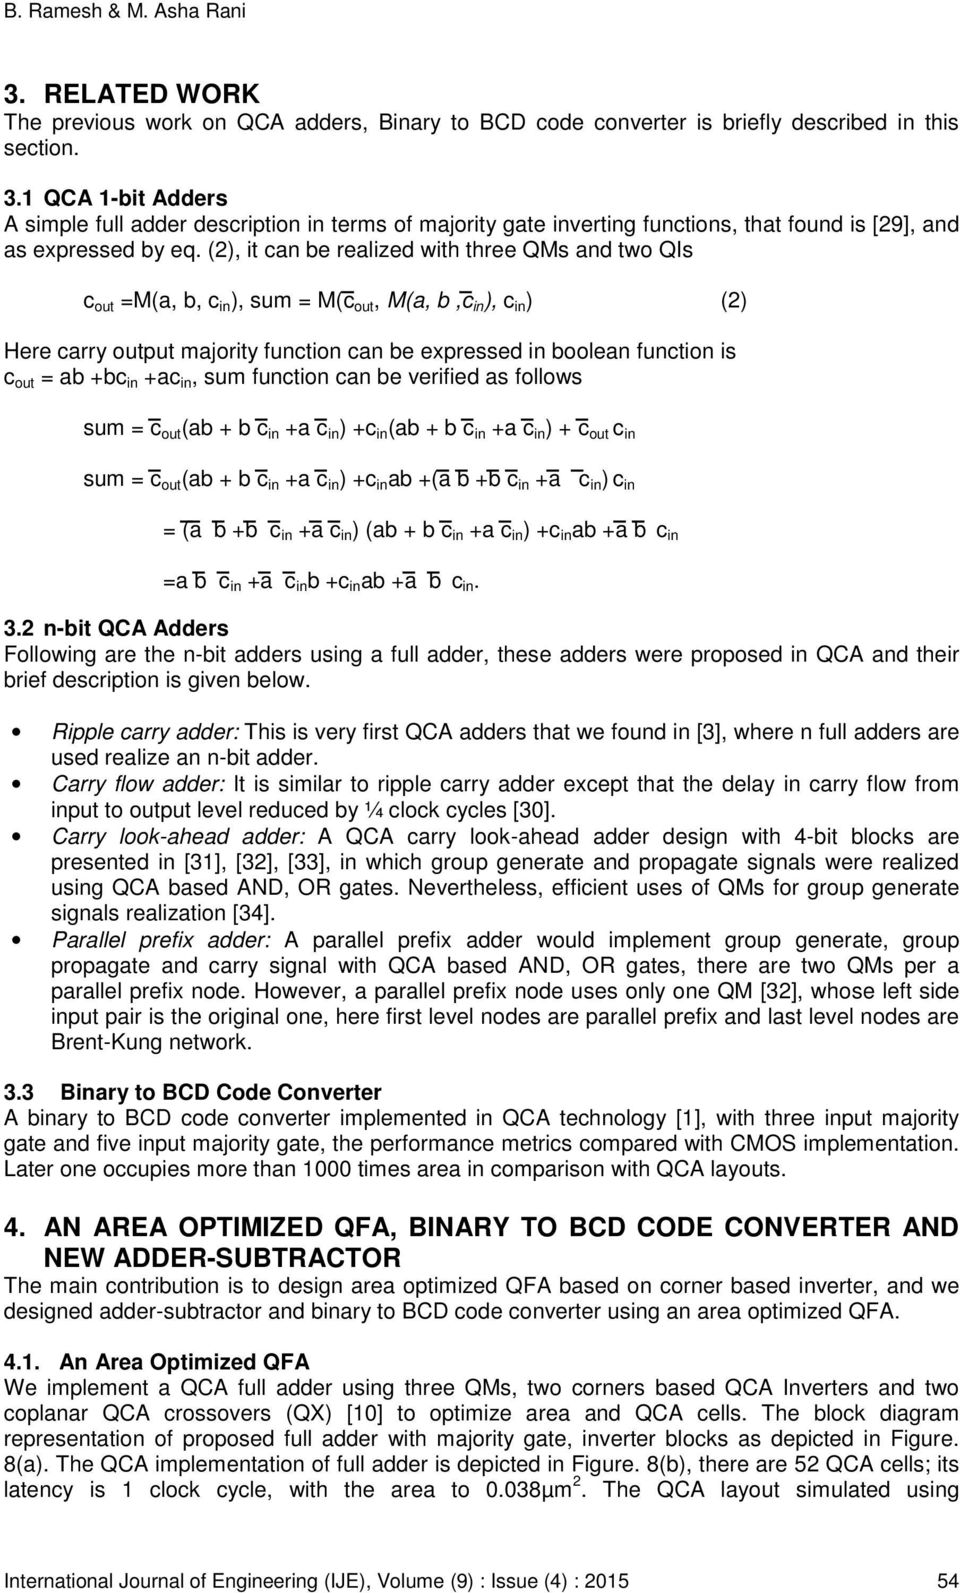 Design Of Binary To Bcd Code Converter Using Area Optimized Quantum Figure1 1 Bit Adder 2 It Can Be Realized With Three Qms And Two Qis C Out